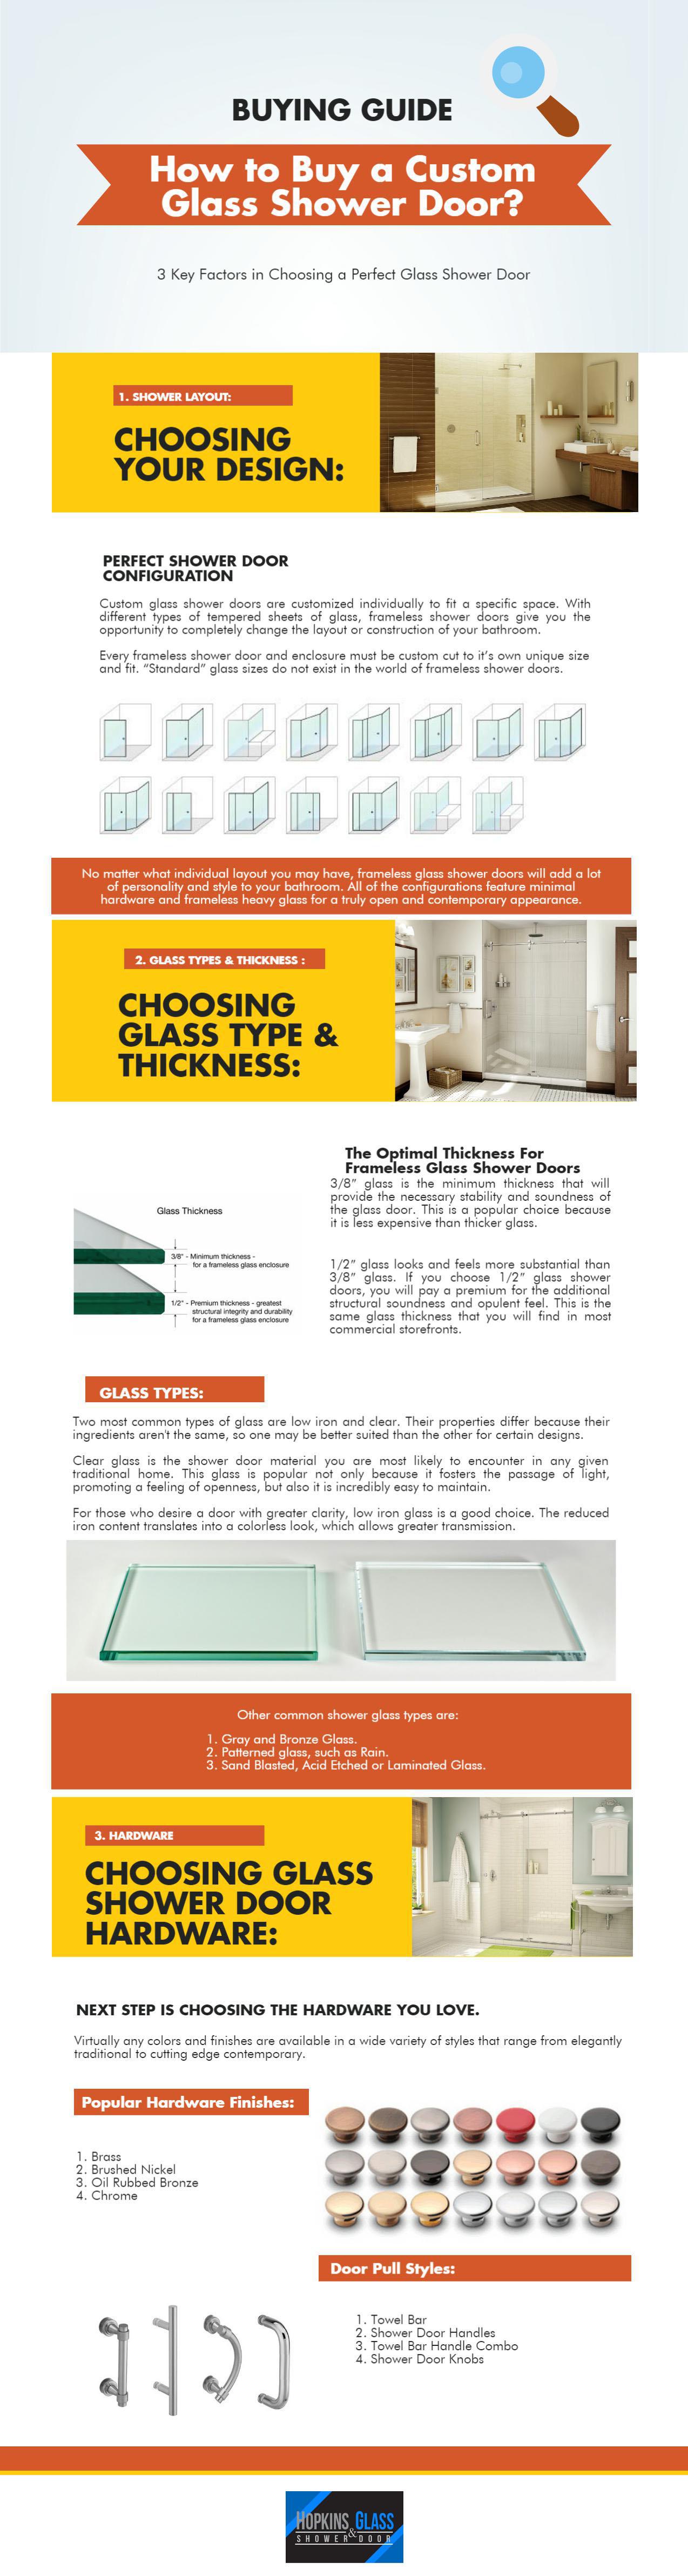 frameless-glass-shower-doors-buying-guide